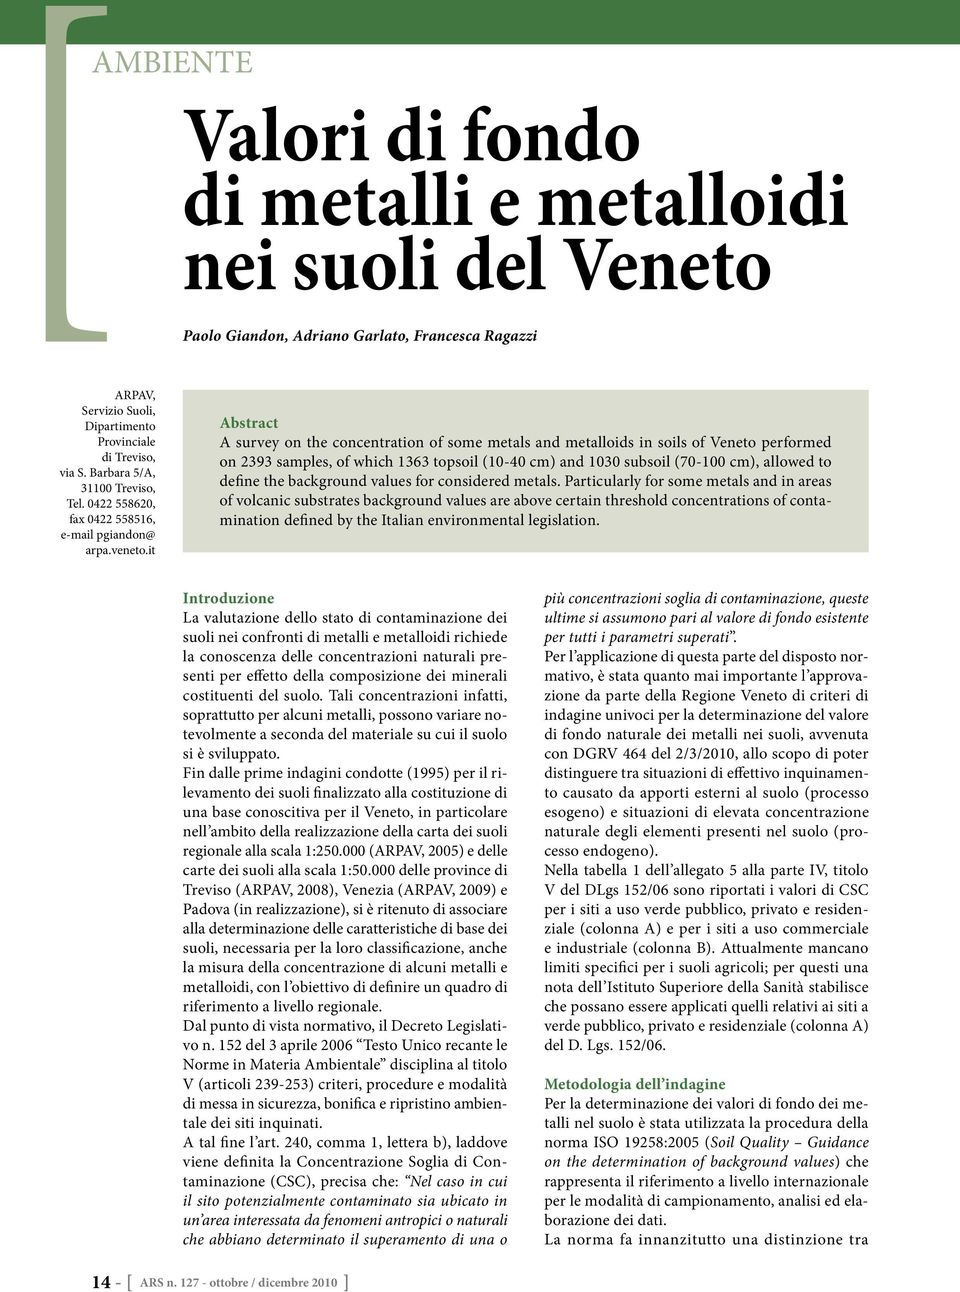 it Abstract A survey on the concentration of some metals and metalloids in soils of Veneto performed on 2393 samples, of which 1363 topsoil (10-40 cm) and 1030 subsoil (70-100 cm), allowed to define